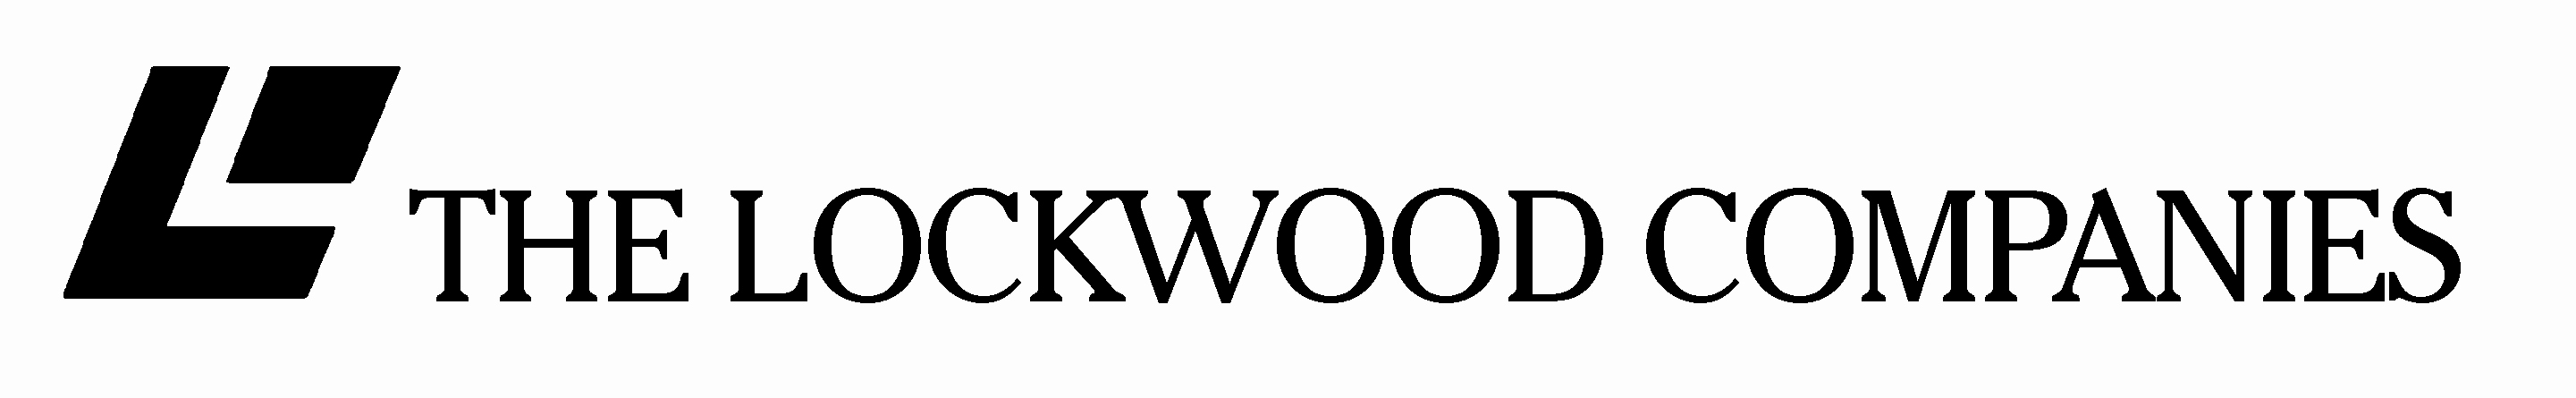 The Lockwood Companies Logo